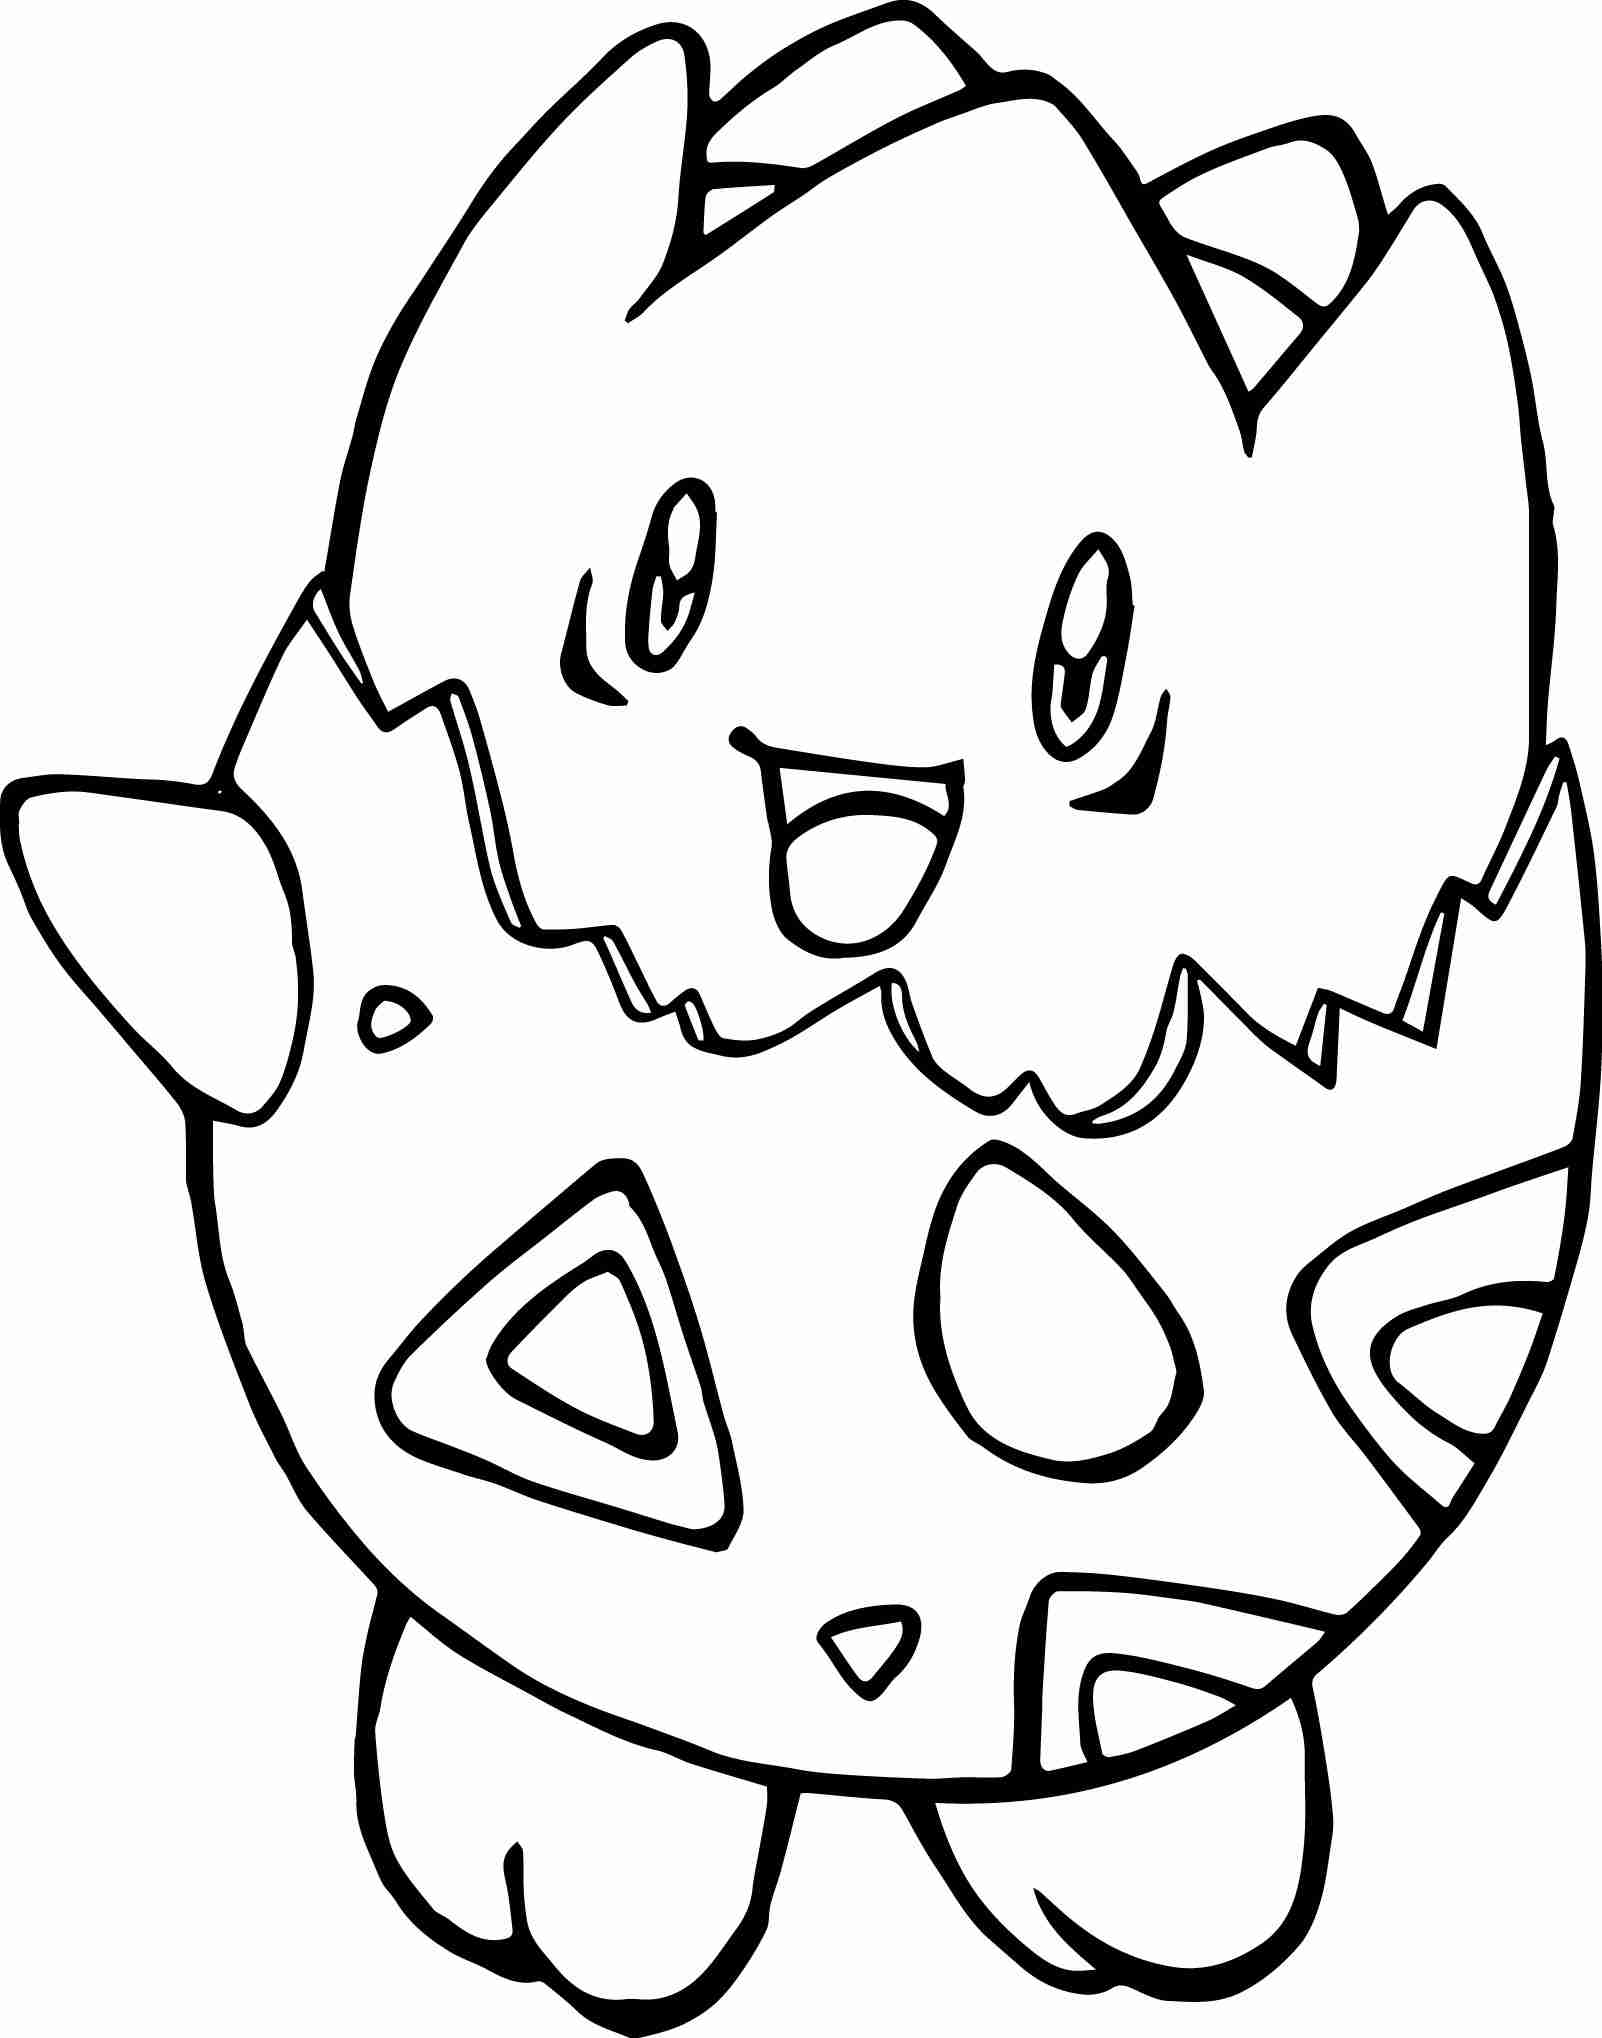 1602x2038 Togepi Coloring Page Throughout Pages Creativemov And Pokemon